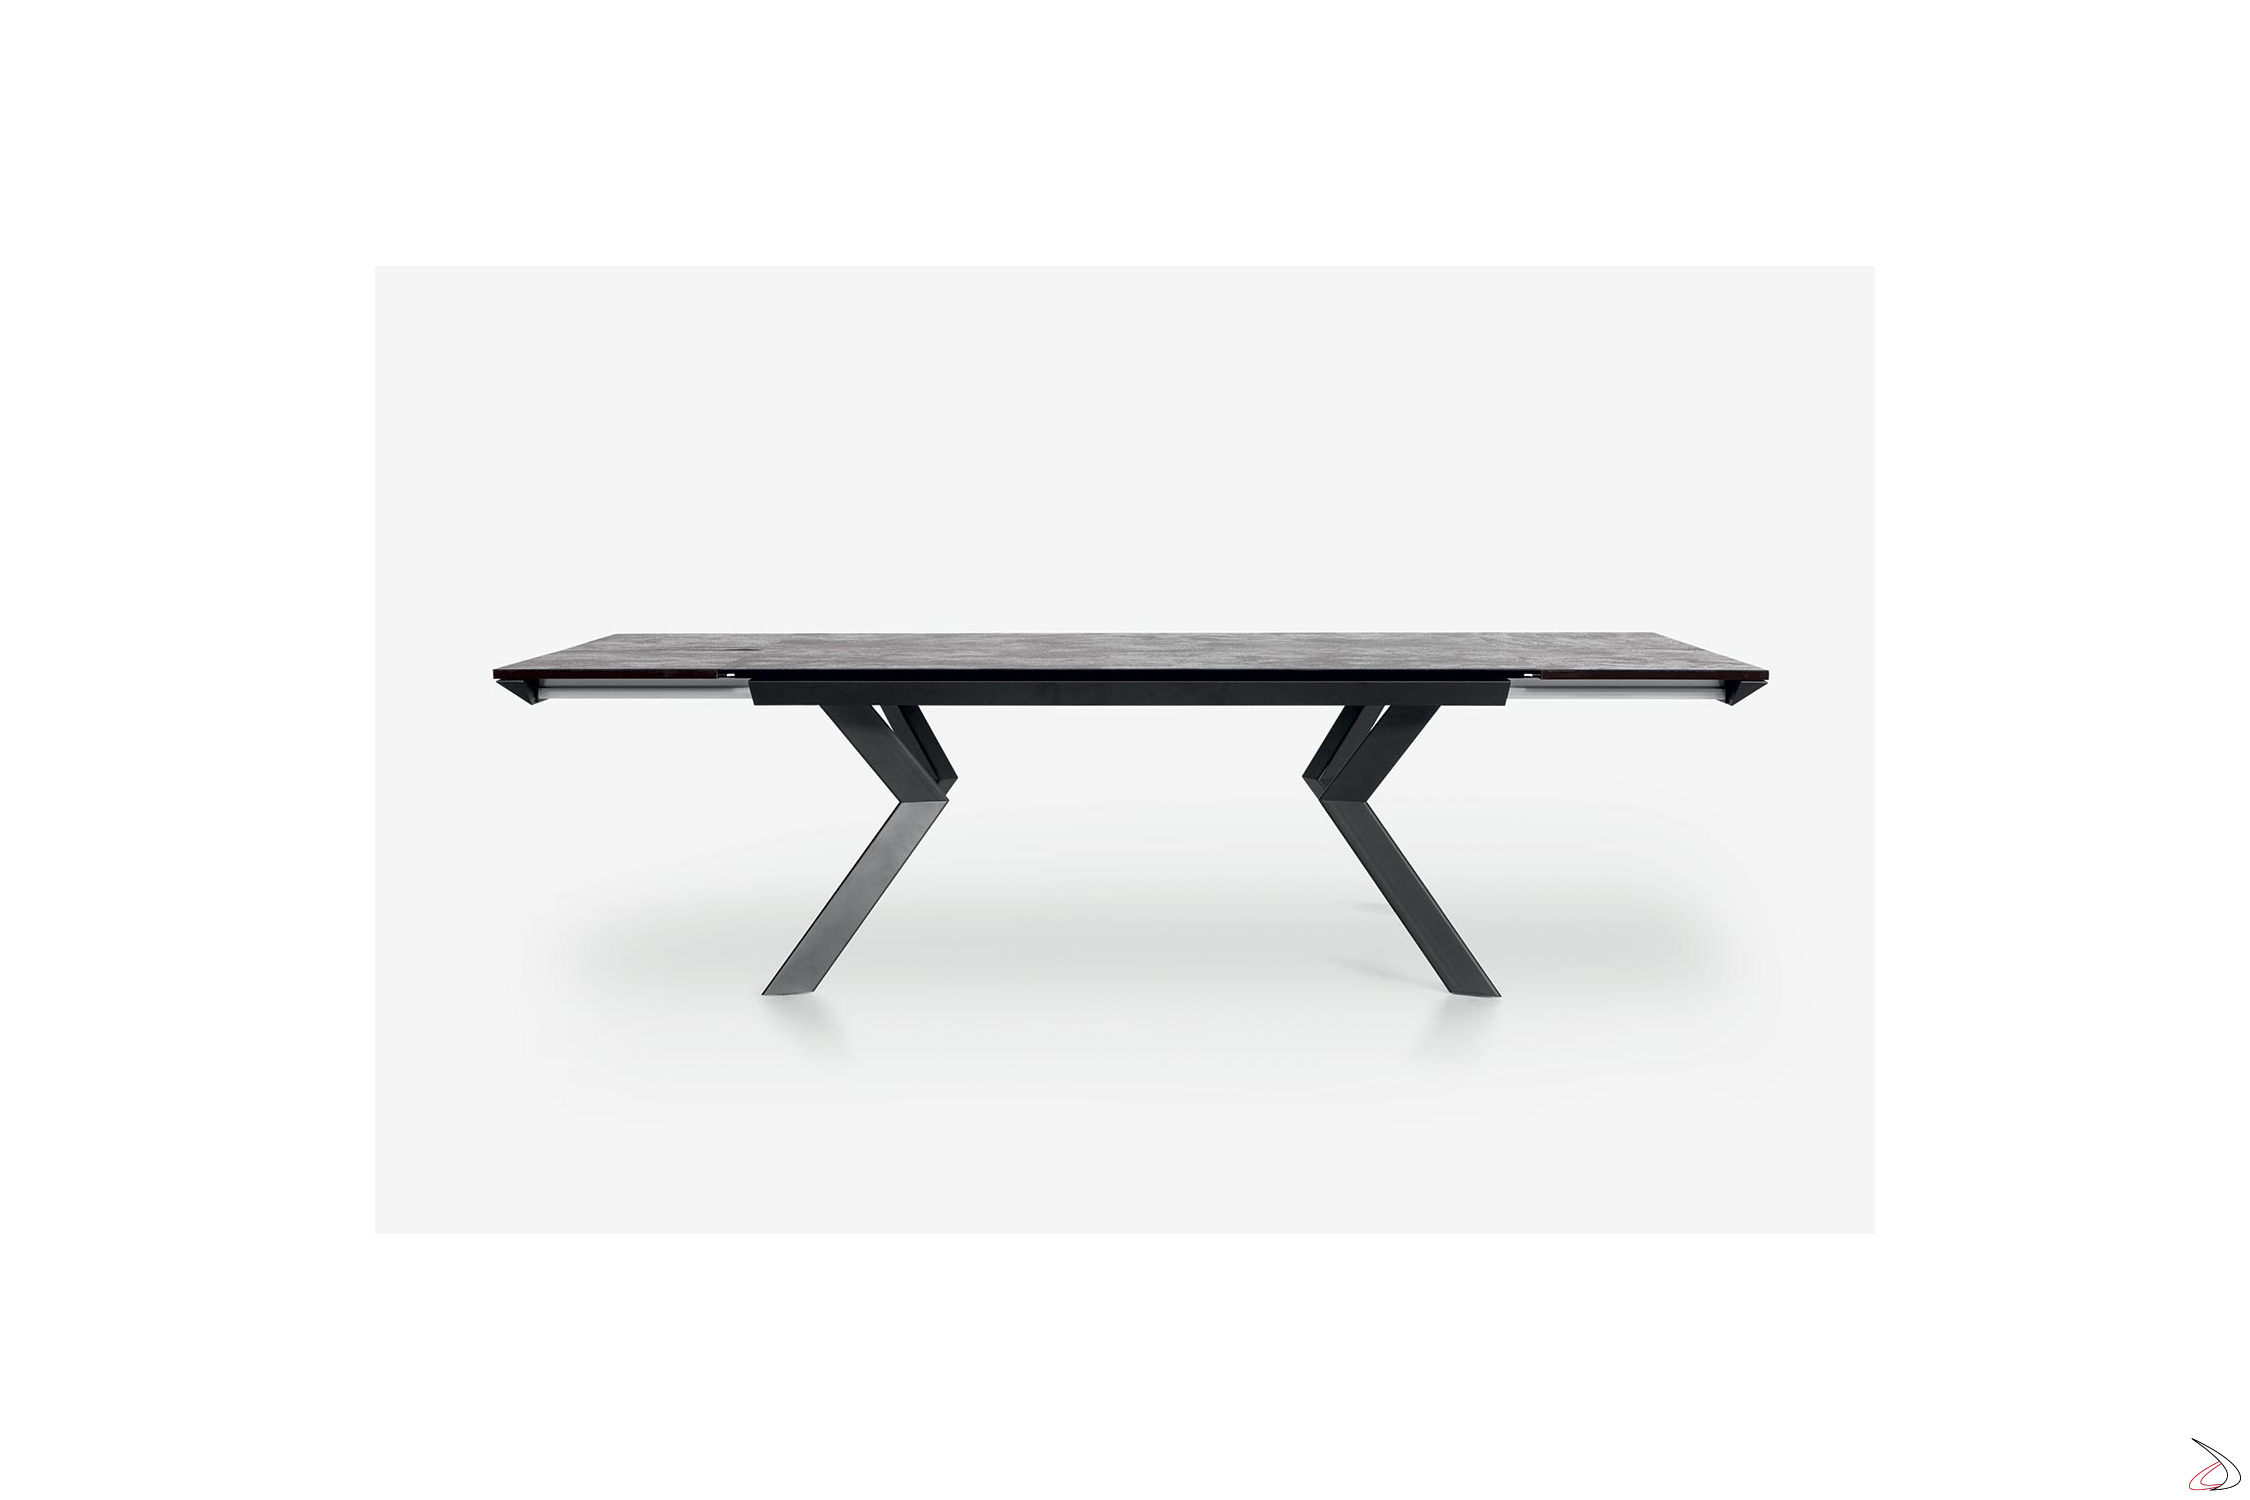 Tavolo Allungabile Fino A 6 Metri.Frank Customizable Extendable Table Toparredi Arredo Design Online